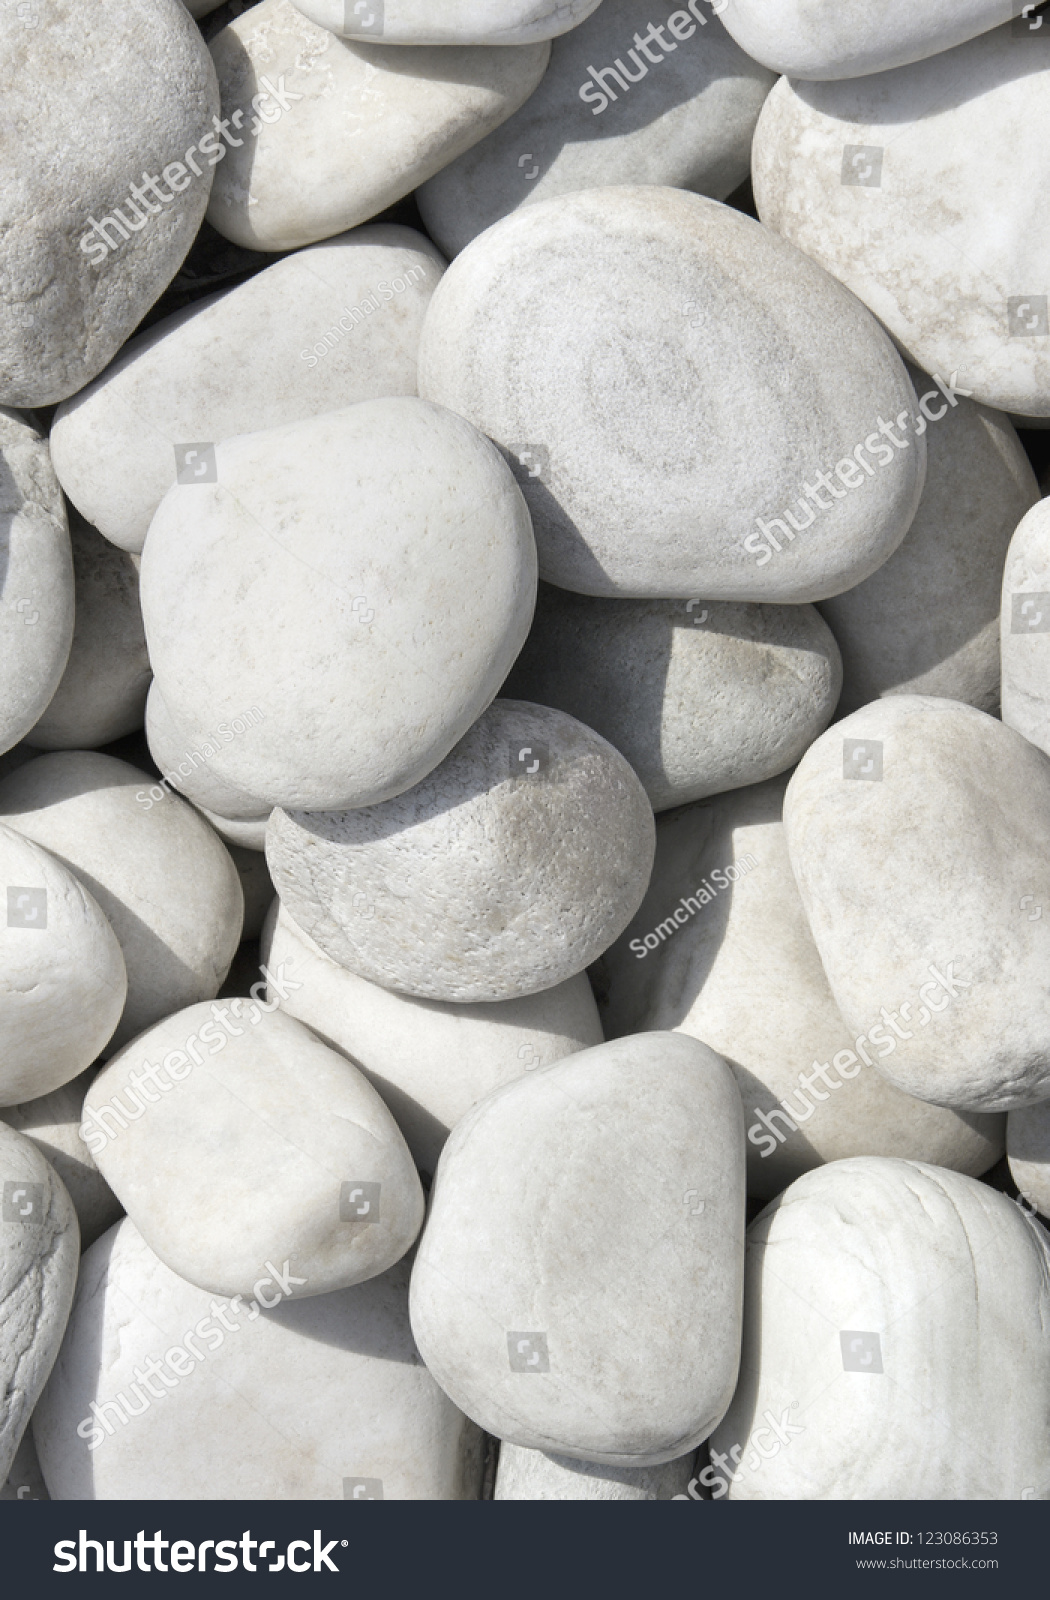 Smooth shaped white stones surface texture background stock photo - Pile Of White Stones For Background Or Texture Close Up Of The White Pebbles